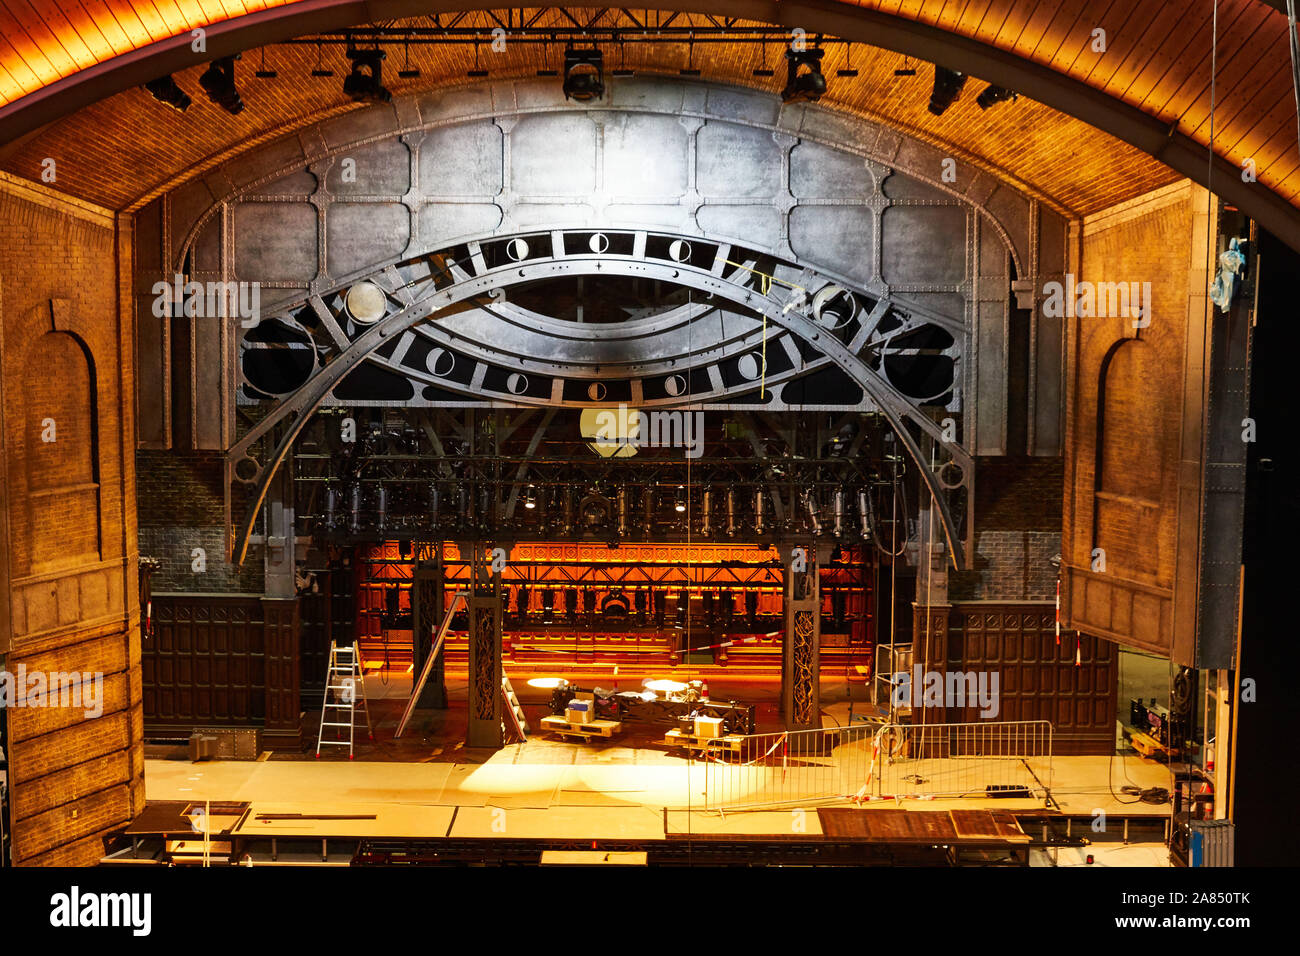 Hamburg Germany 06th Nov 2019 The Unfinished Stage Recorded During A Press Conference On The Progress